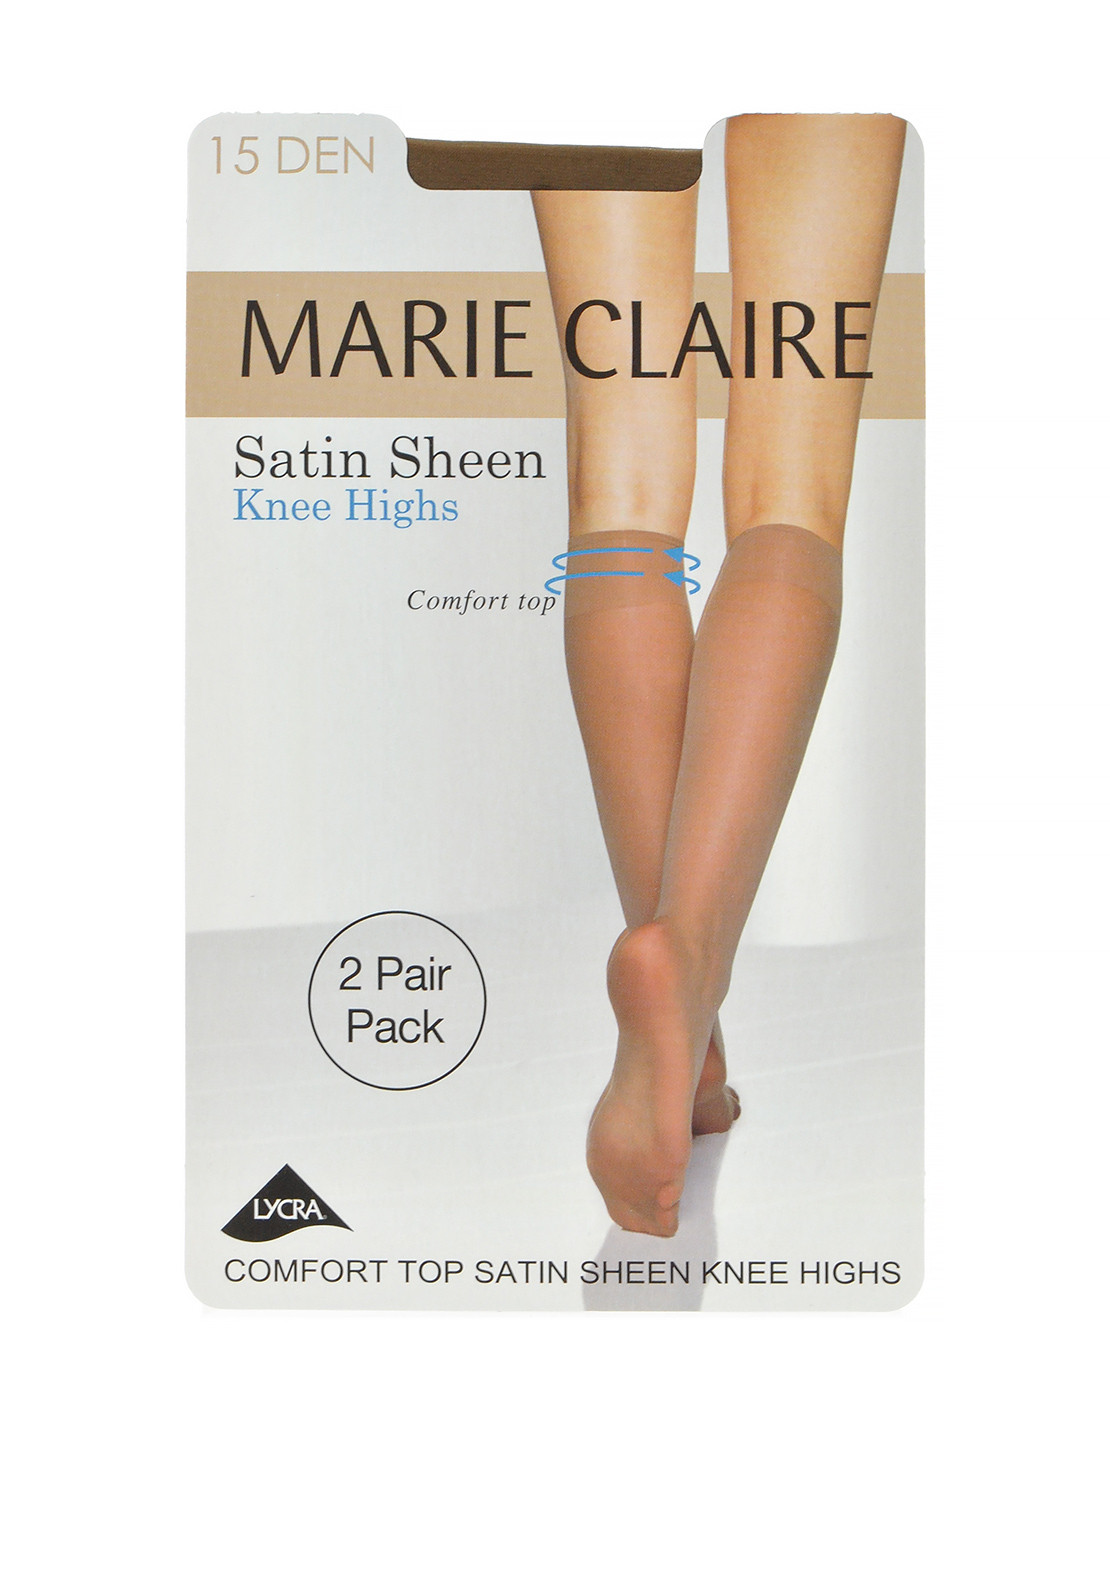 Marie Claire 15 Denier Satin Sheen Knee High Stockings Twin Pack Lyon, One Size